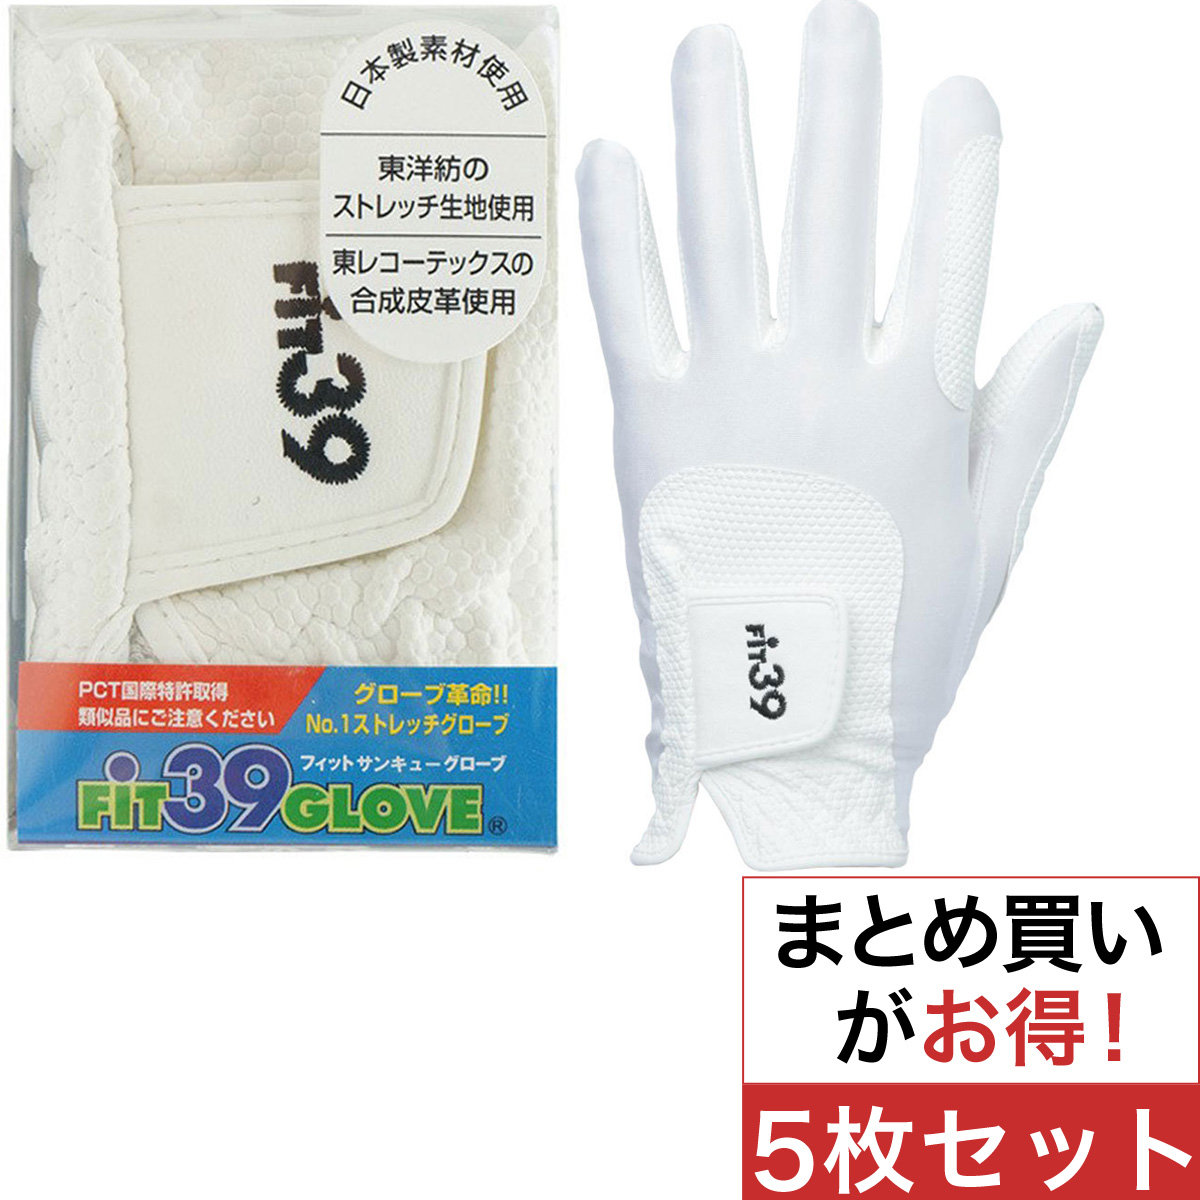 FIT 39 グローブ 5枚セット